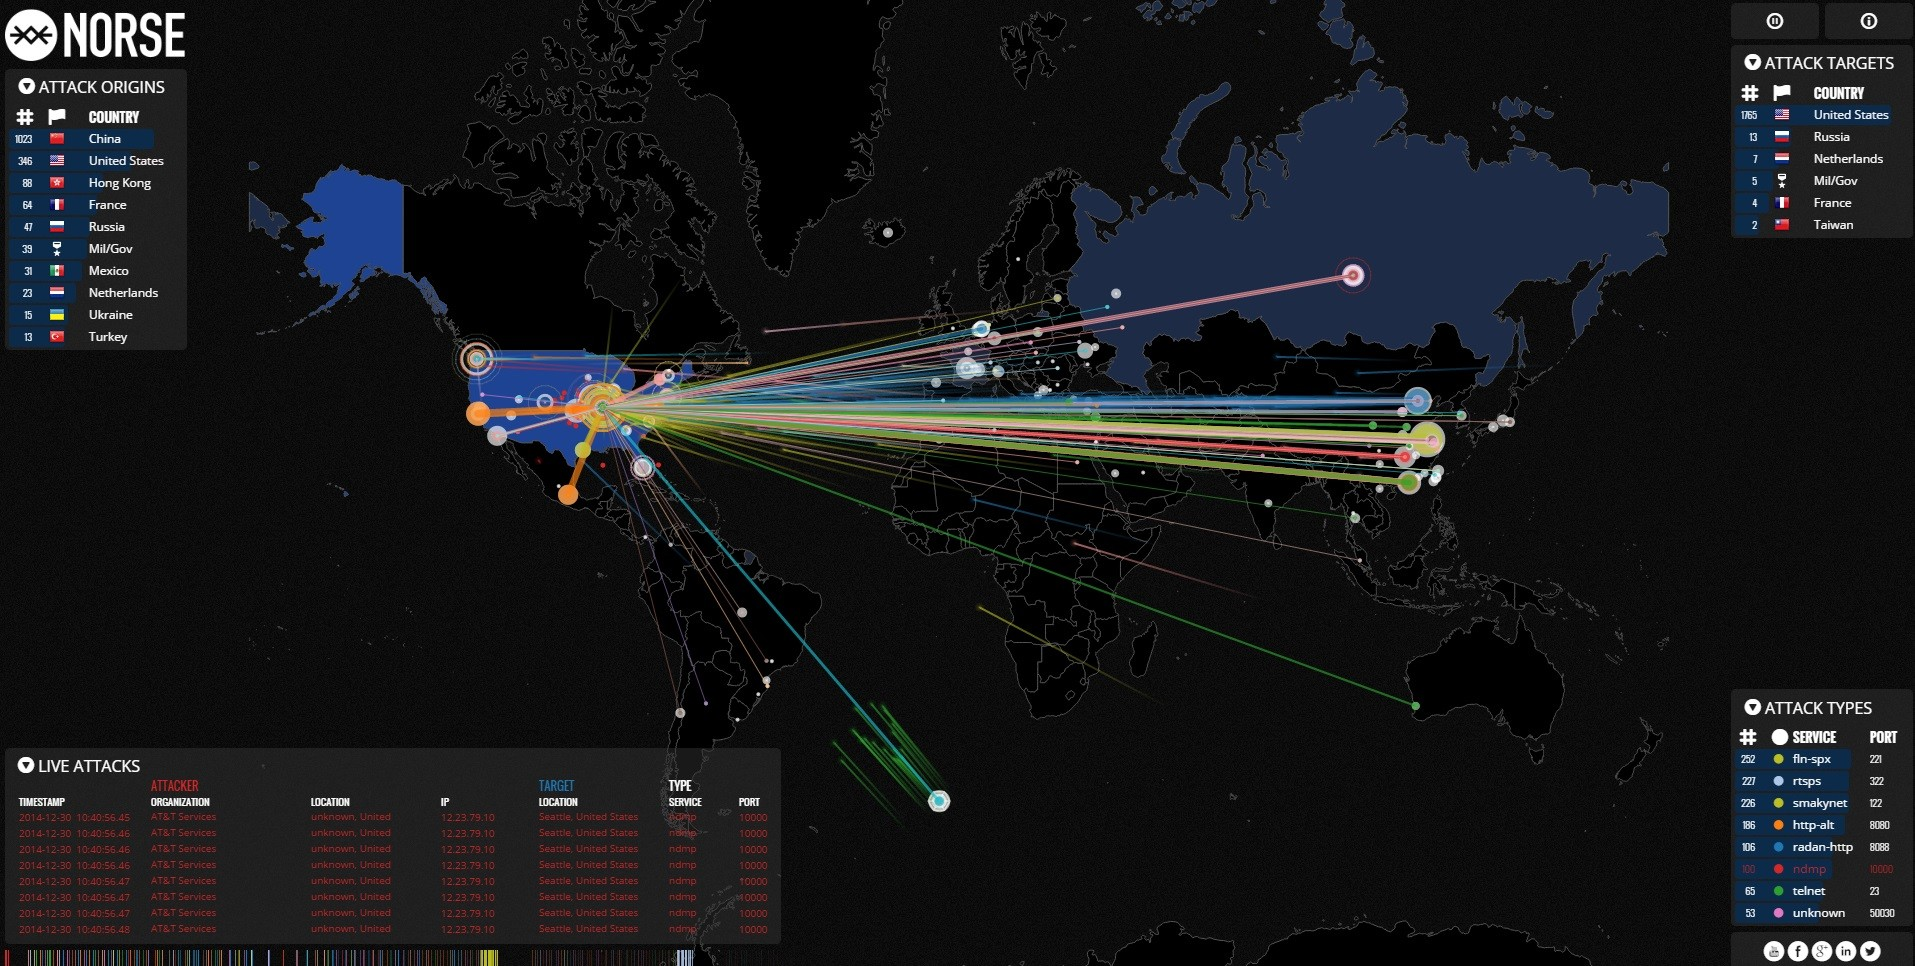 Cyber attack maps are a trove of information threat map from norse shows powerful attack on the us gumiabroncs Choice Image